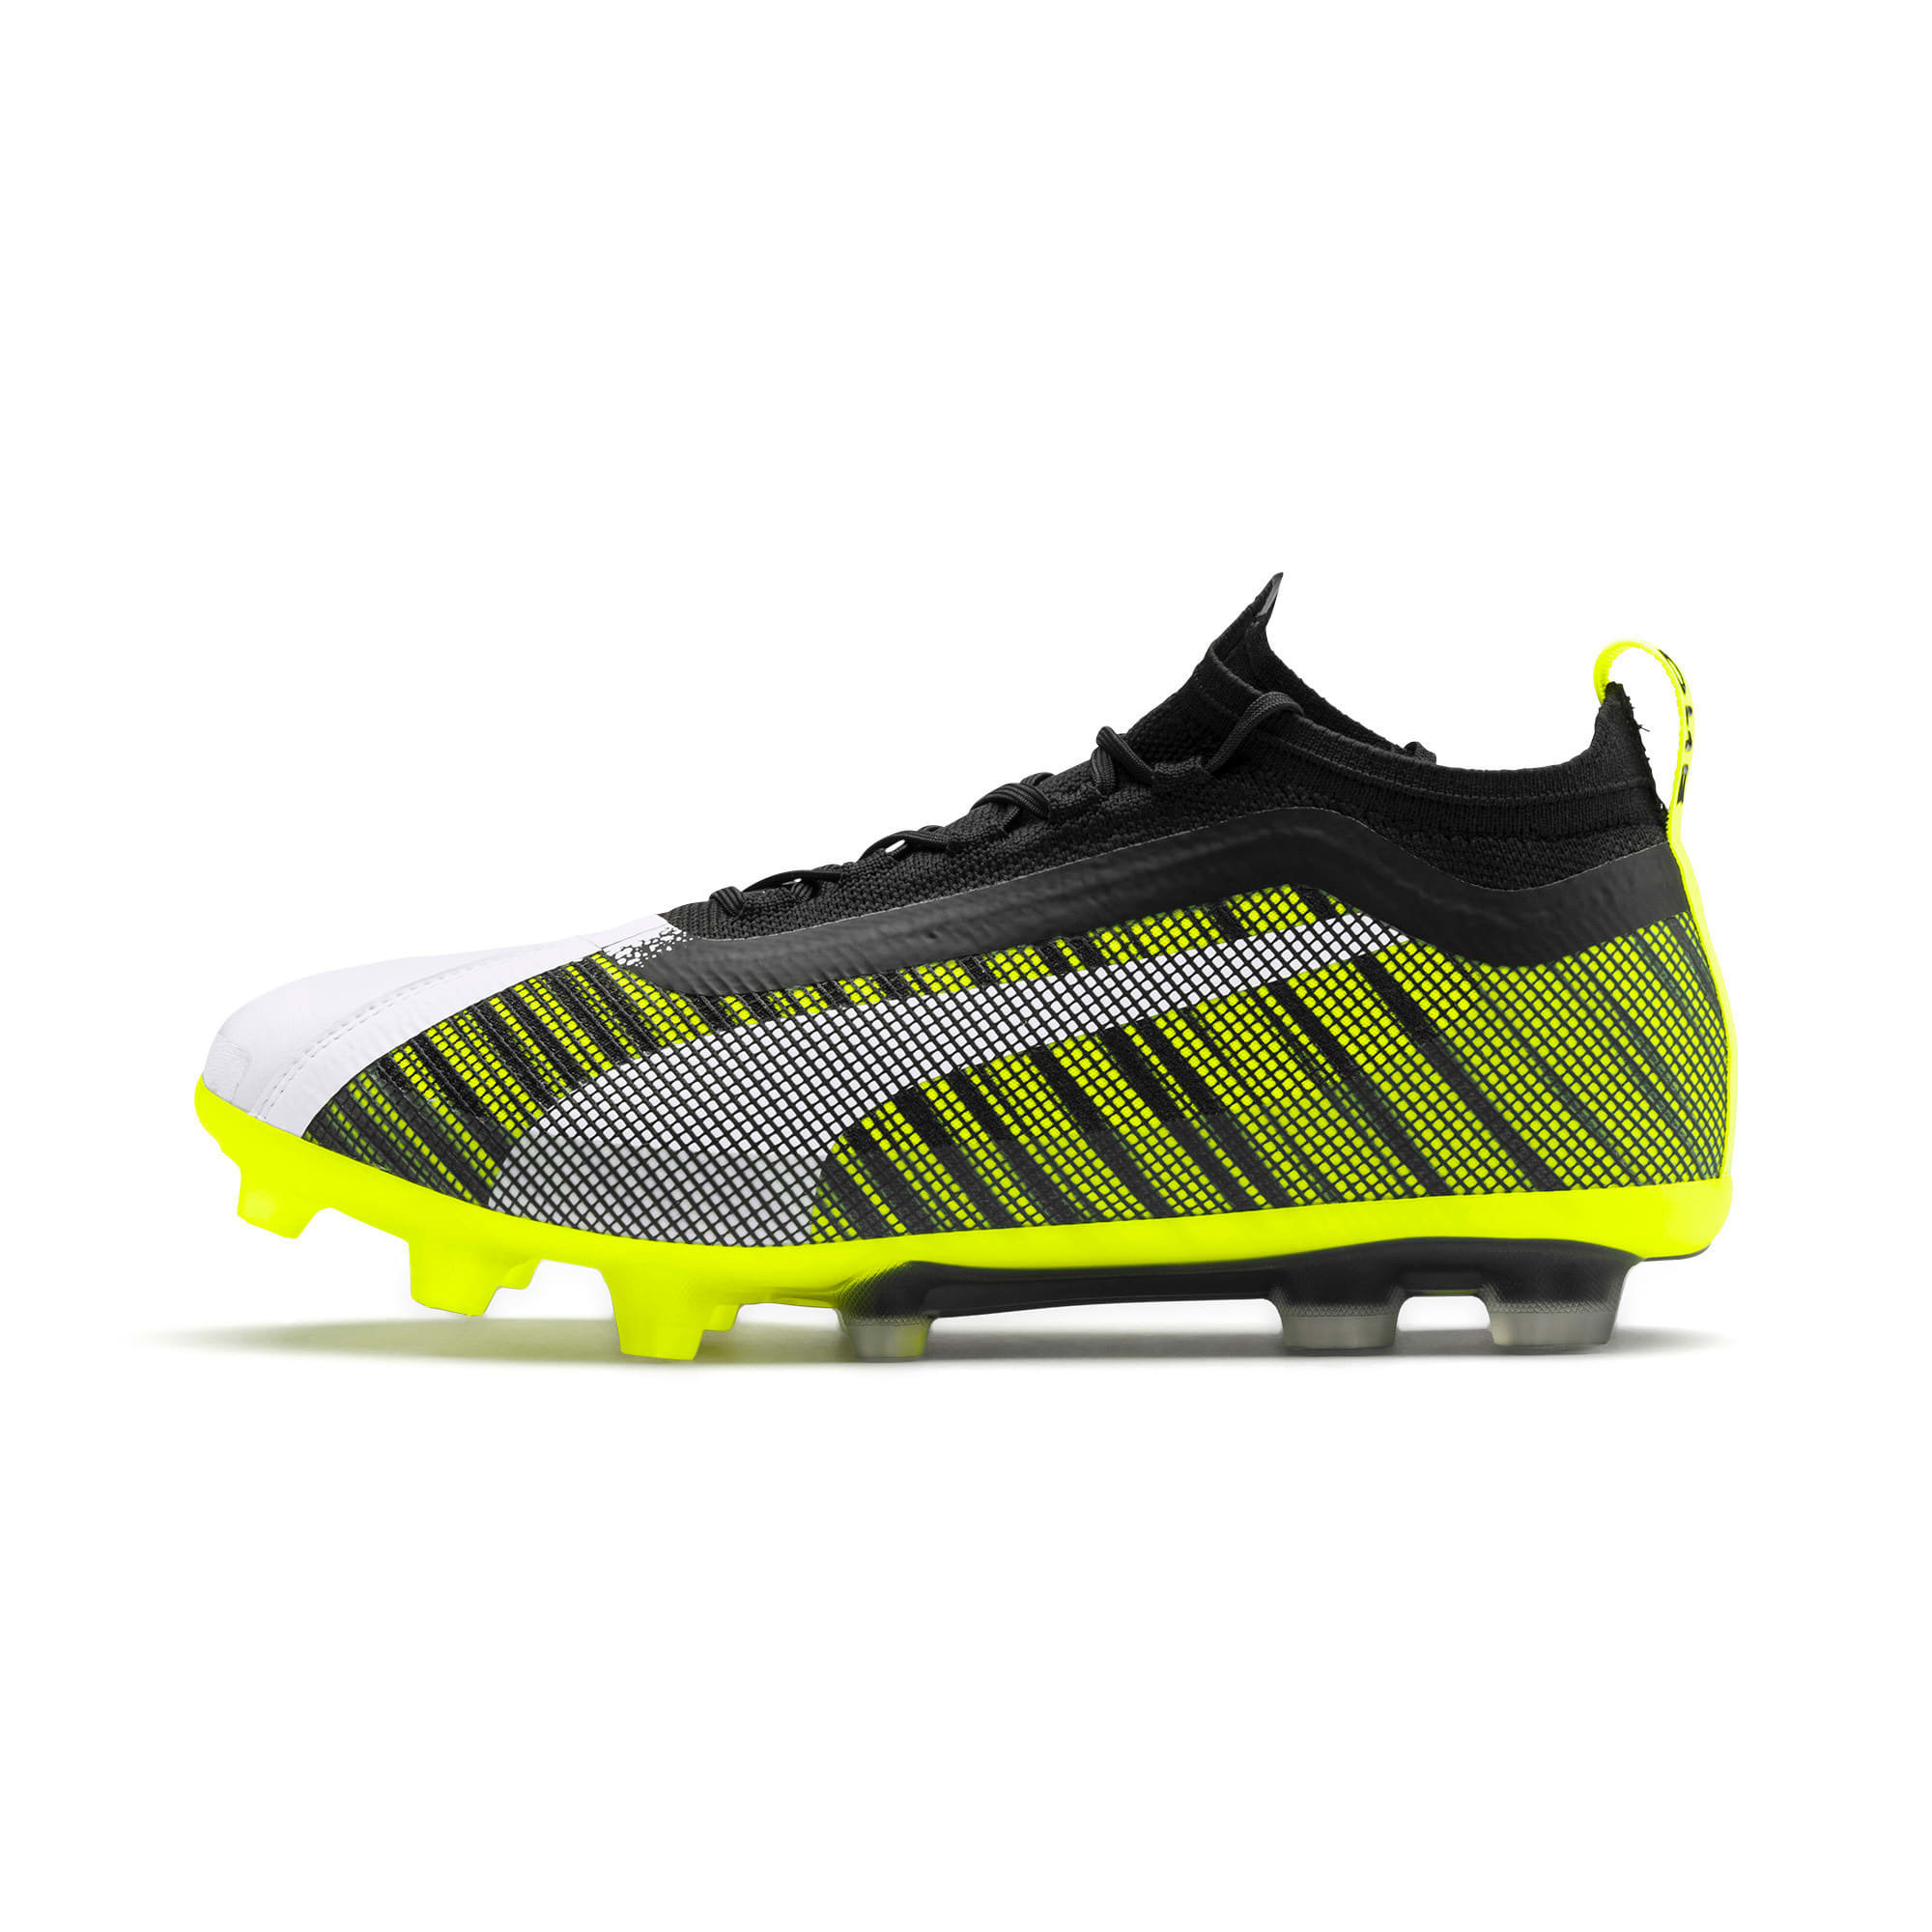 Thumbnail 1 of プーマ ワン 5.1 HG サッカースパイク, White-Black-Yellow Alert, medium-JPN